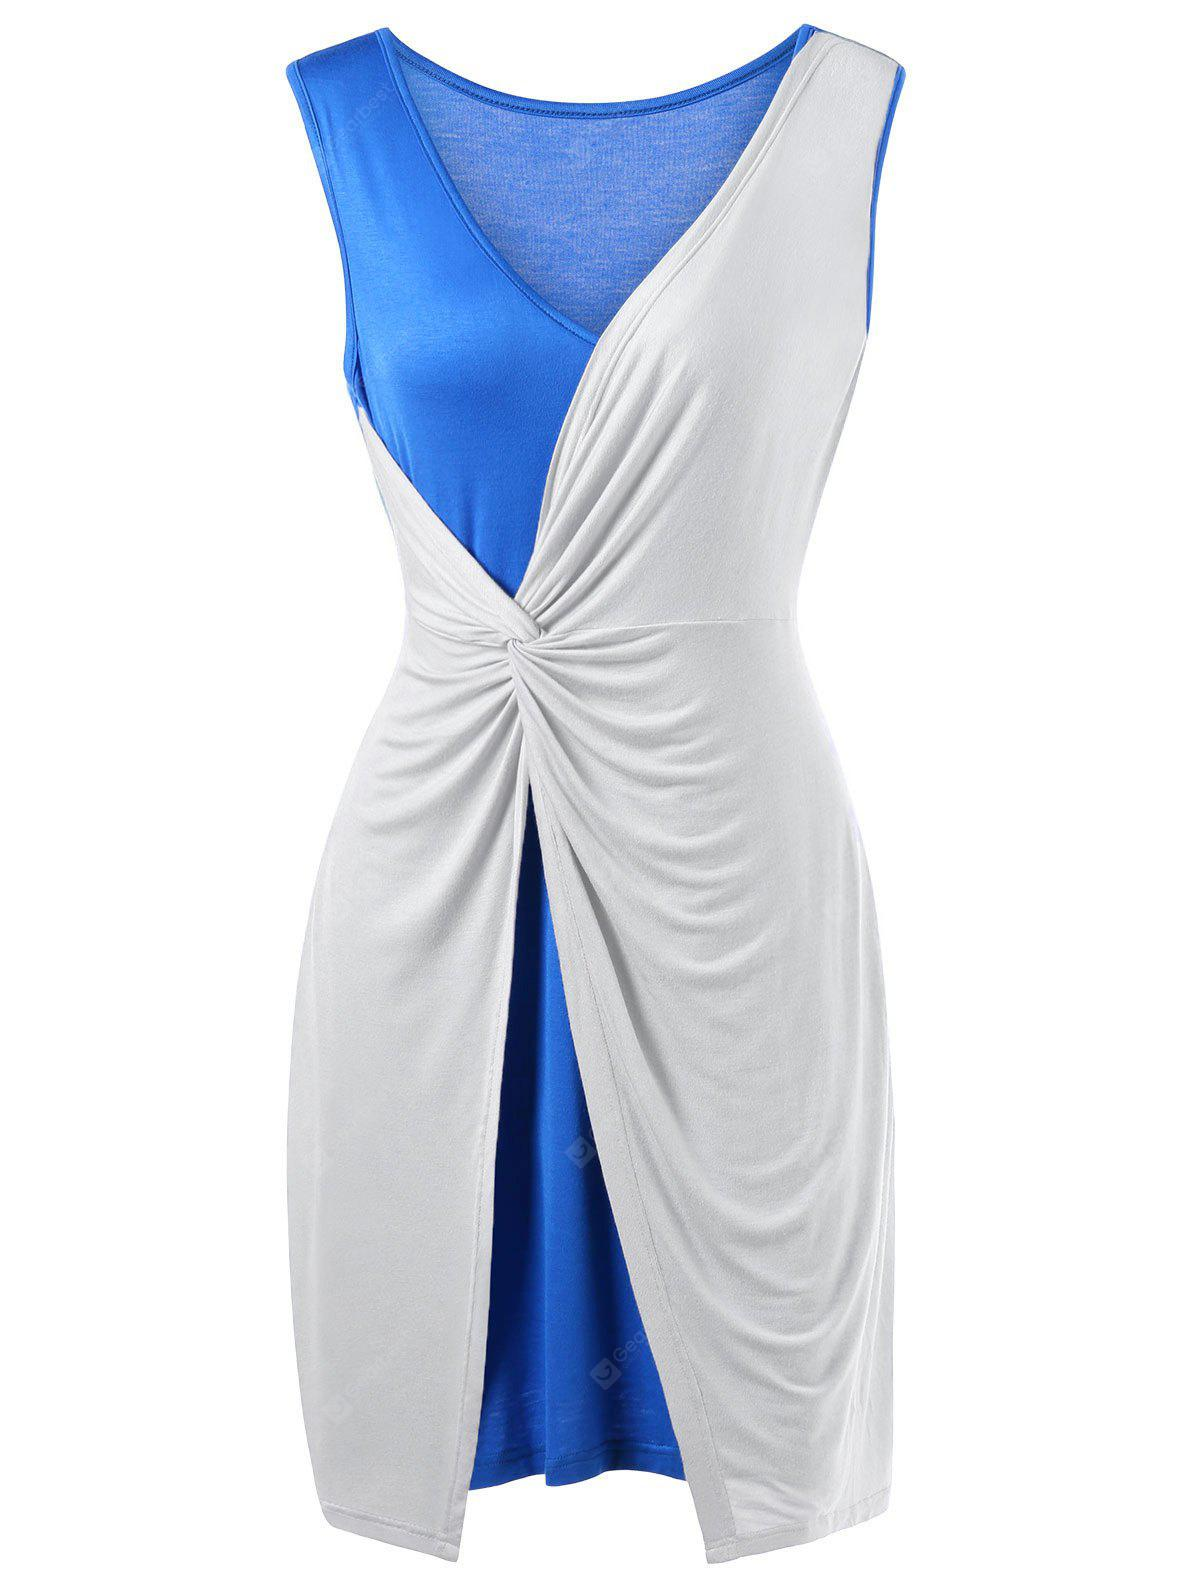 BLUE AND WHITE 5XL Plus Size Two Tone Twist Front Sleeveless Dress